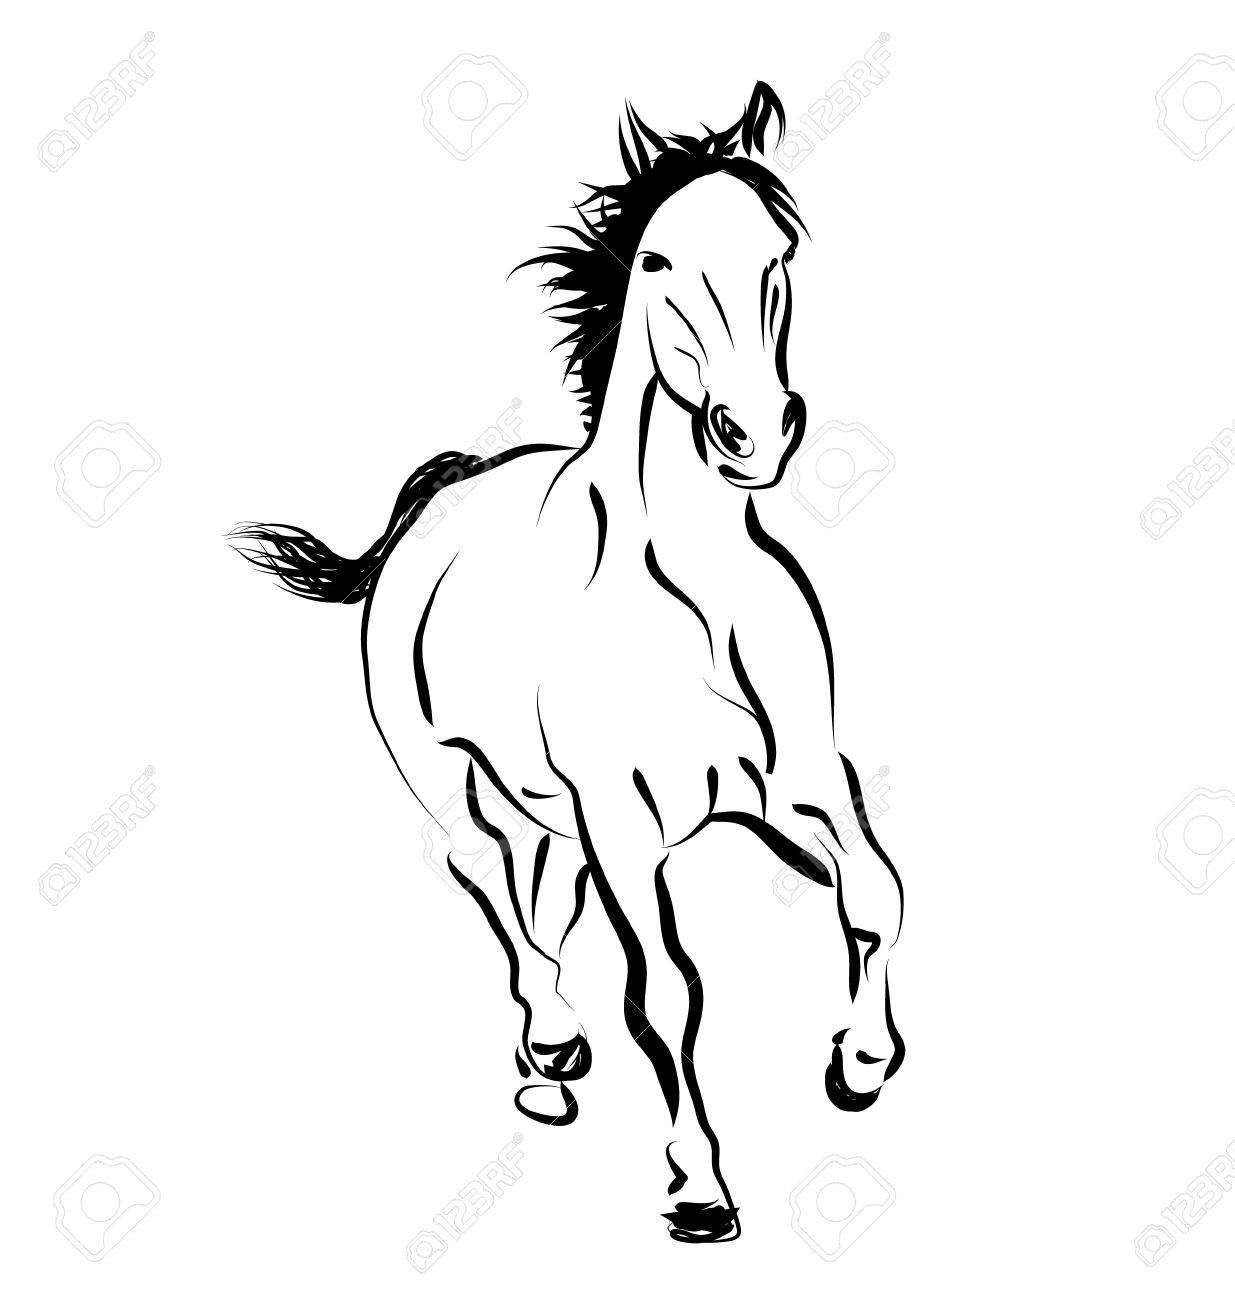 Vector Line Sketch Of A Running Horse Royalty Free Cliparts Vectors And Stock Illustration Image 56734321